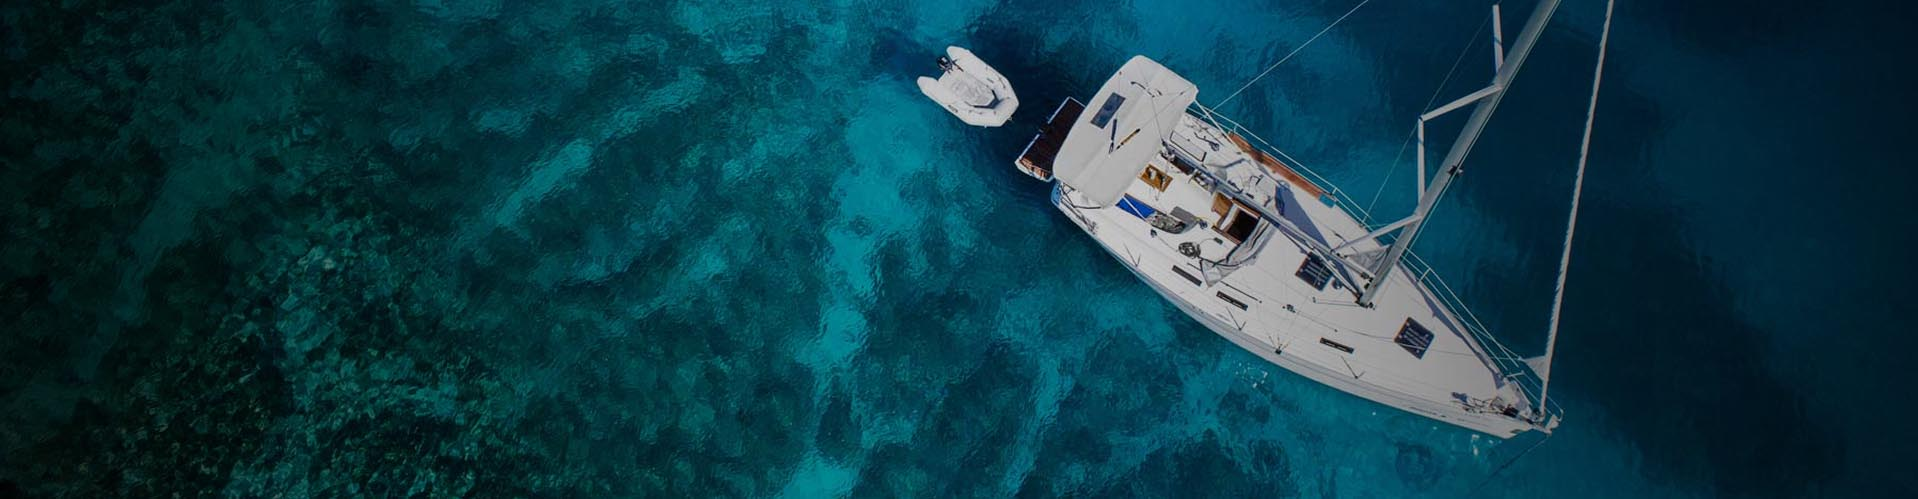 The most complete and up-to-date charter base of sailing yachts in Croatia.